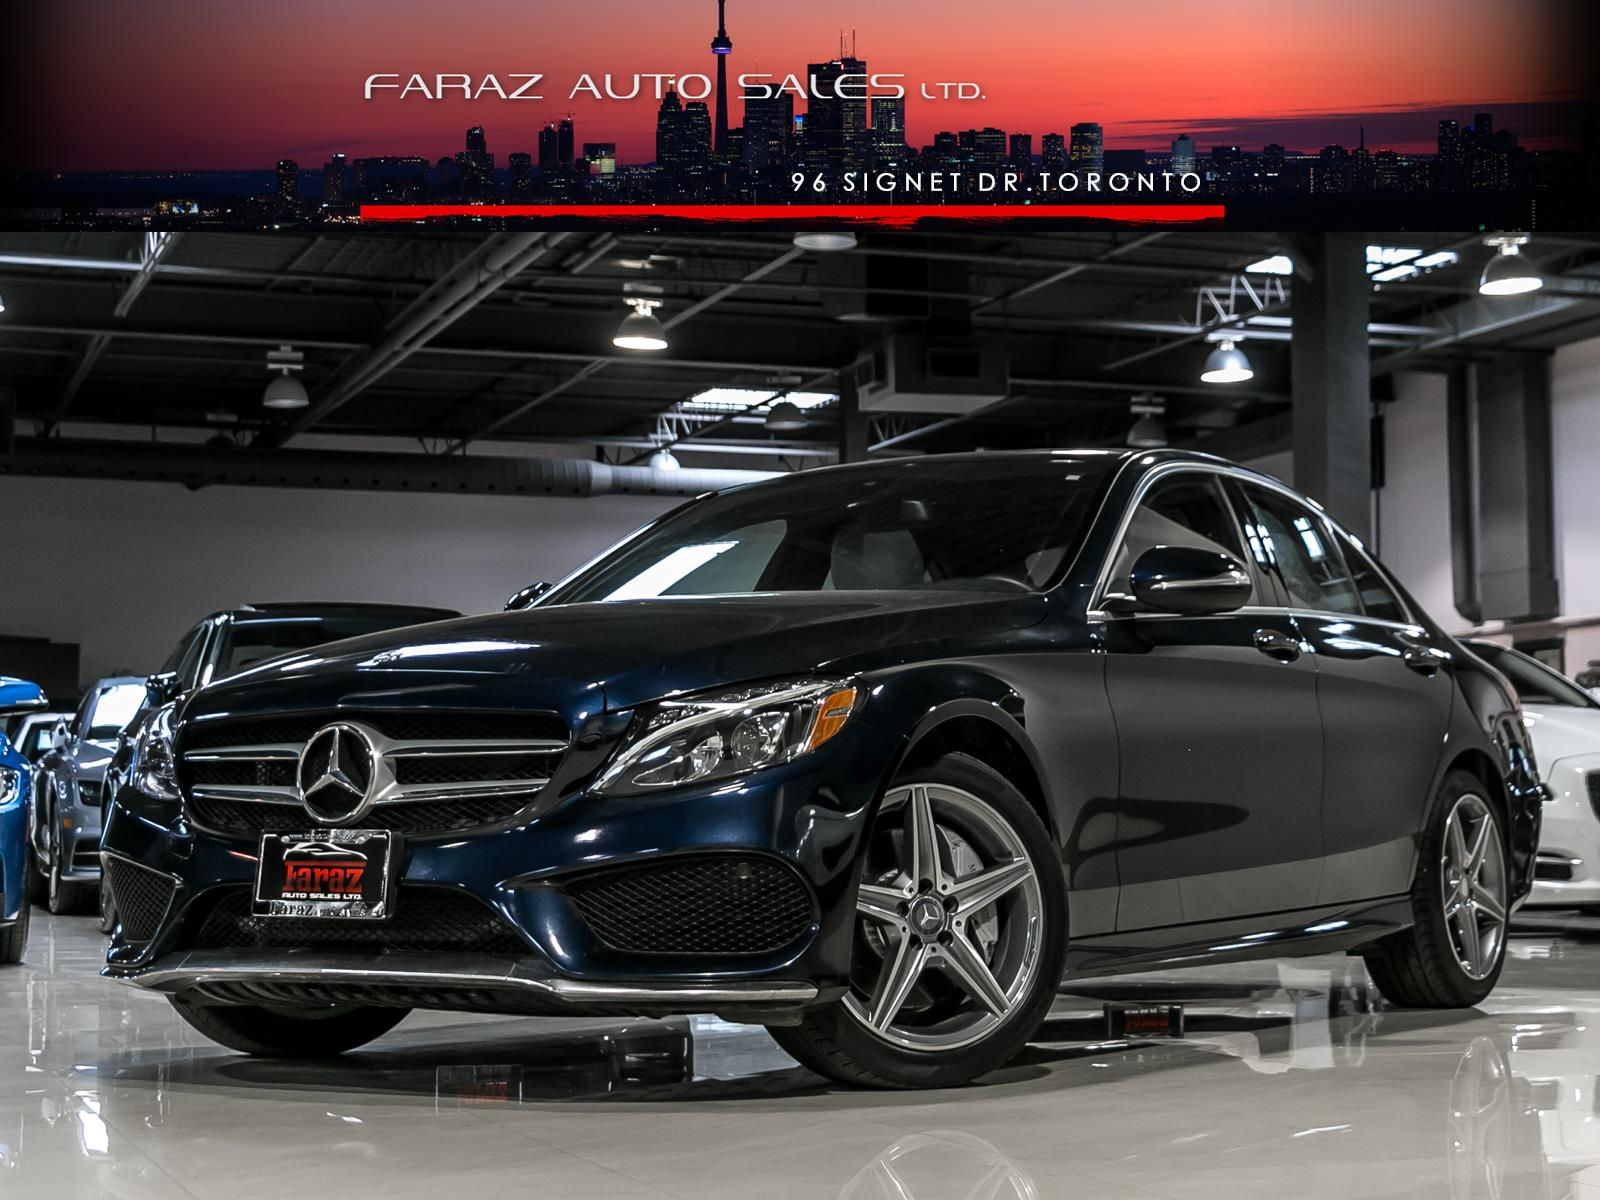 c class used at sport elite detail coupe mercedes auto benz